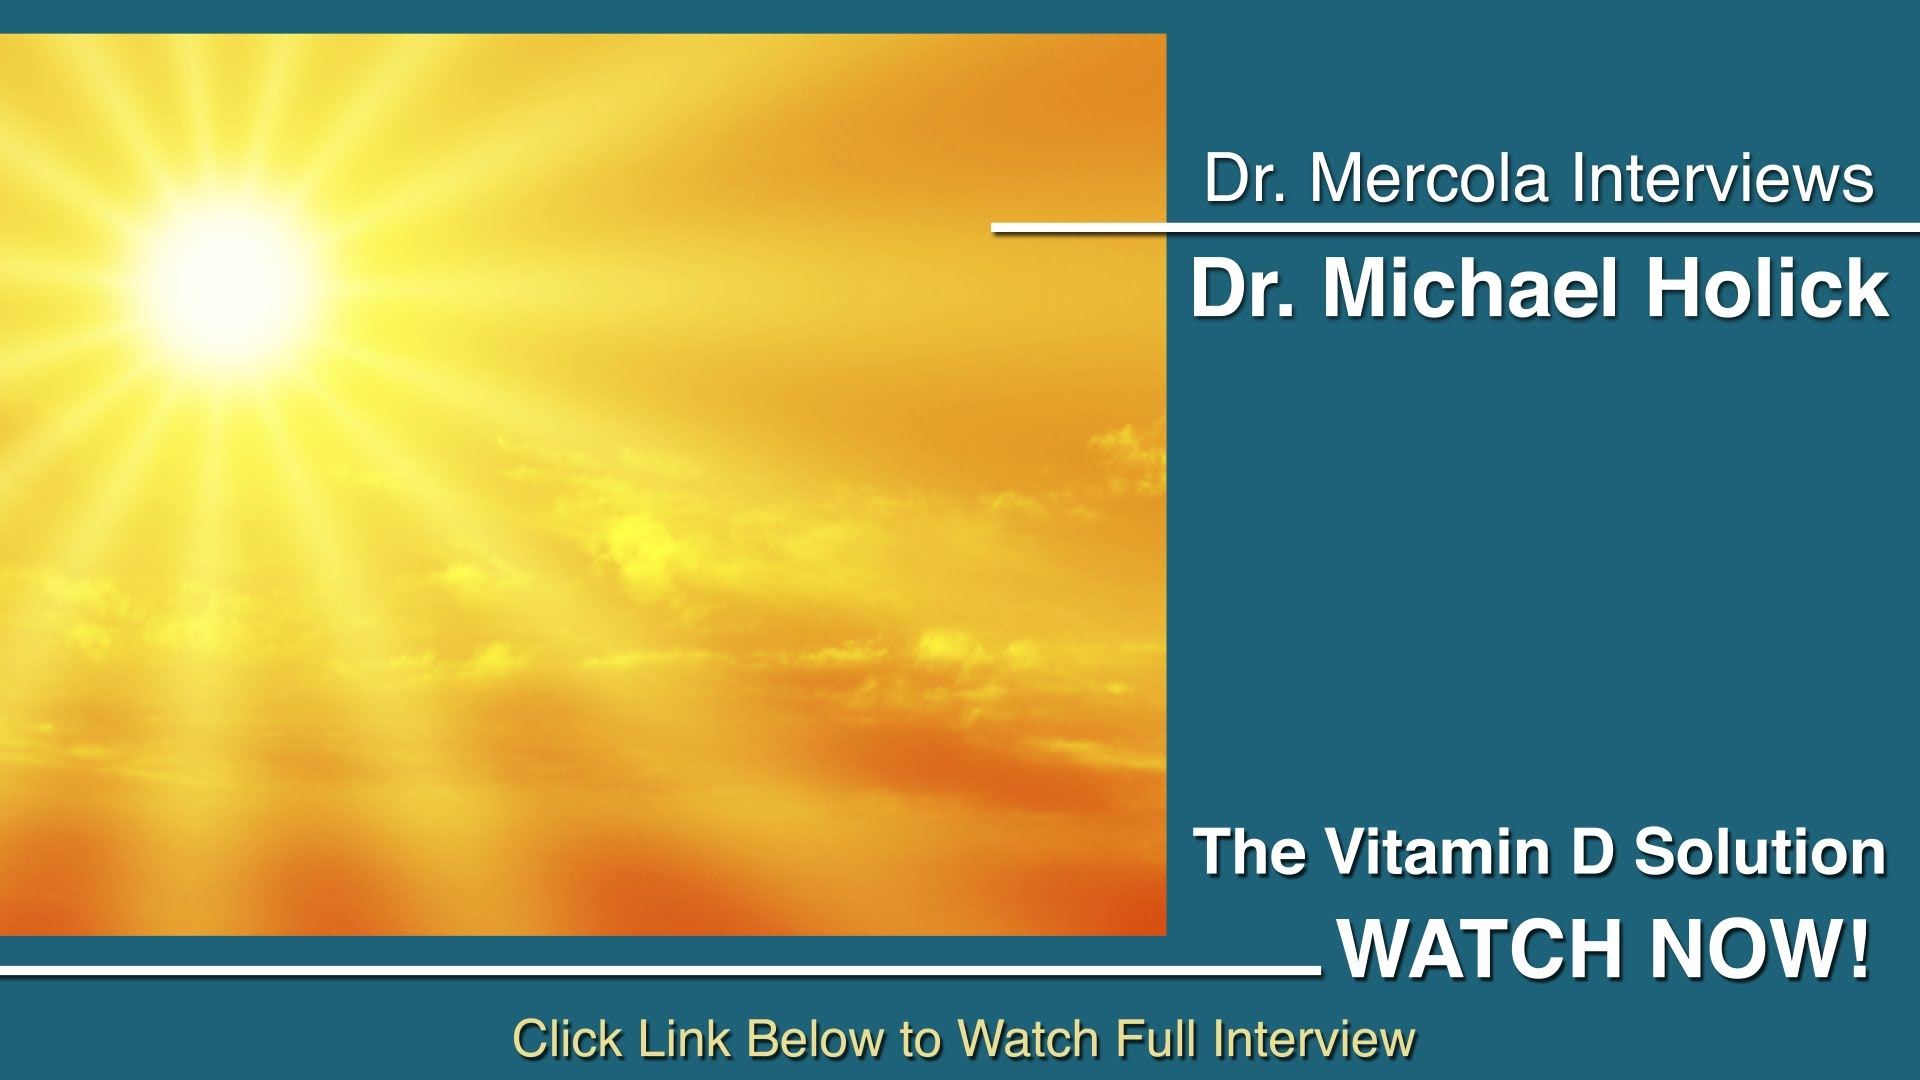 Vitamin D—One of the Simplest Solutions to Wide-Ranging Health Problems